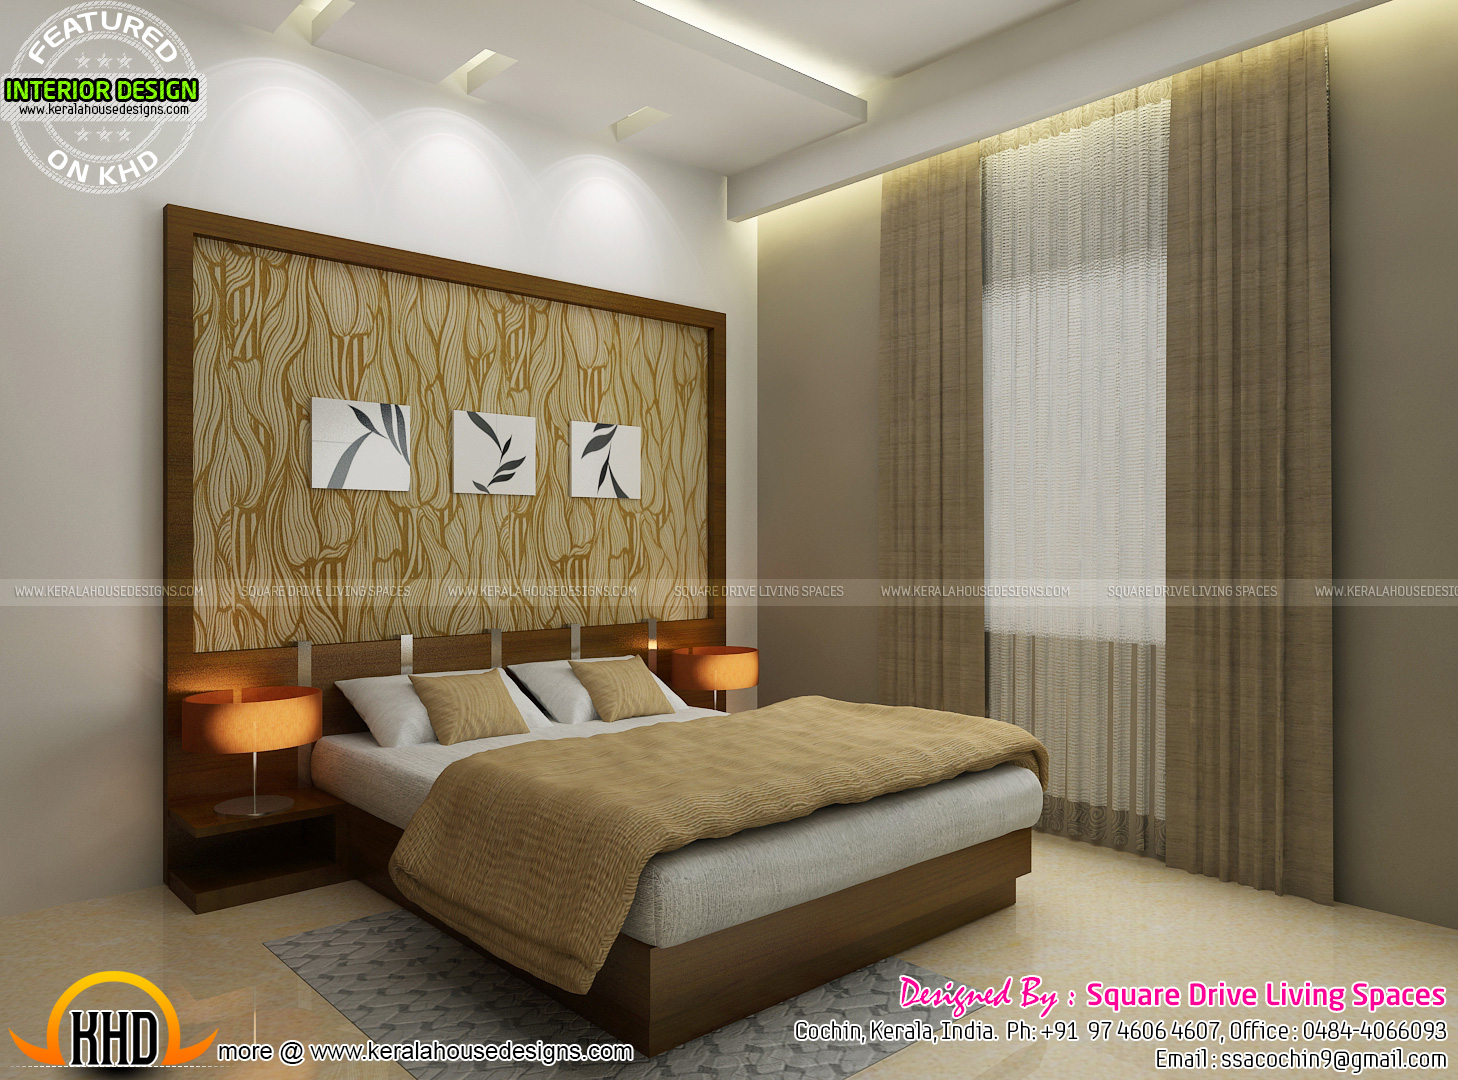 Interior designs of master bedroom living kitchen and for Designs bedroom